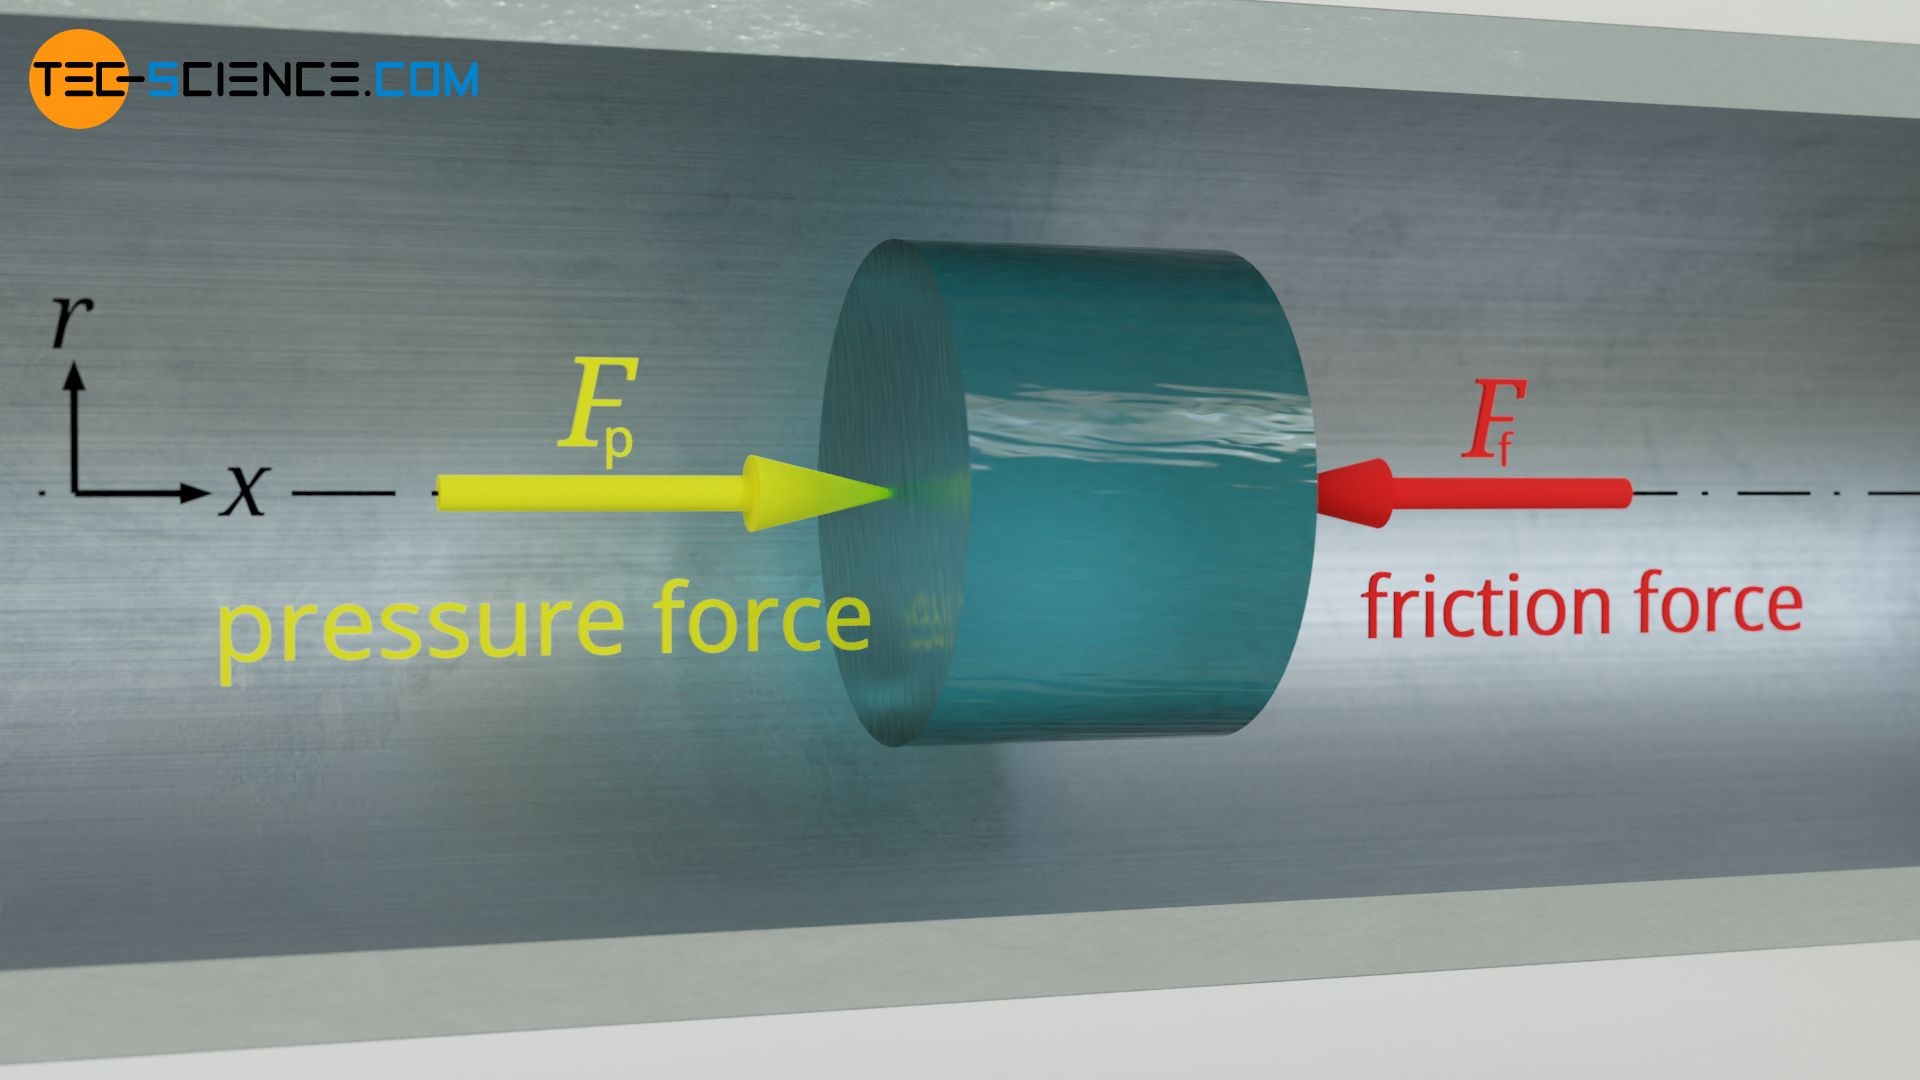 Balance of forces between pressure force and frictional force in the steady case